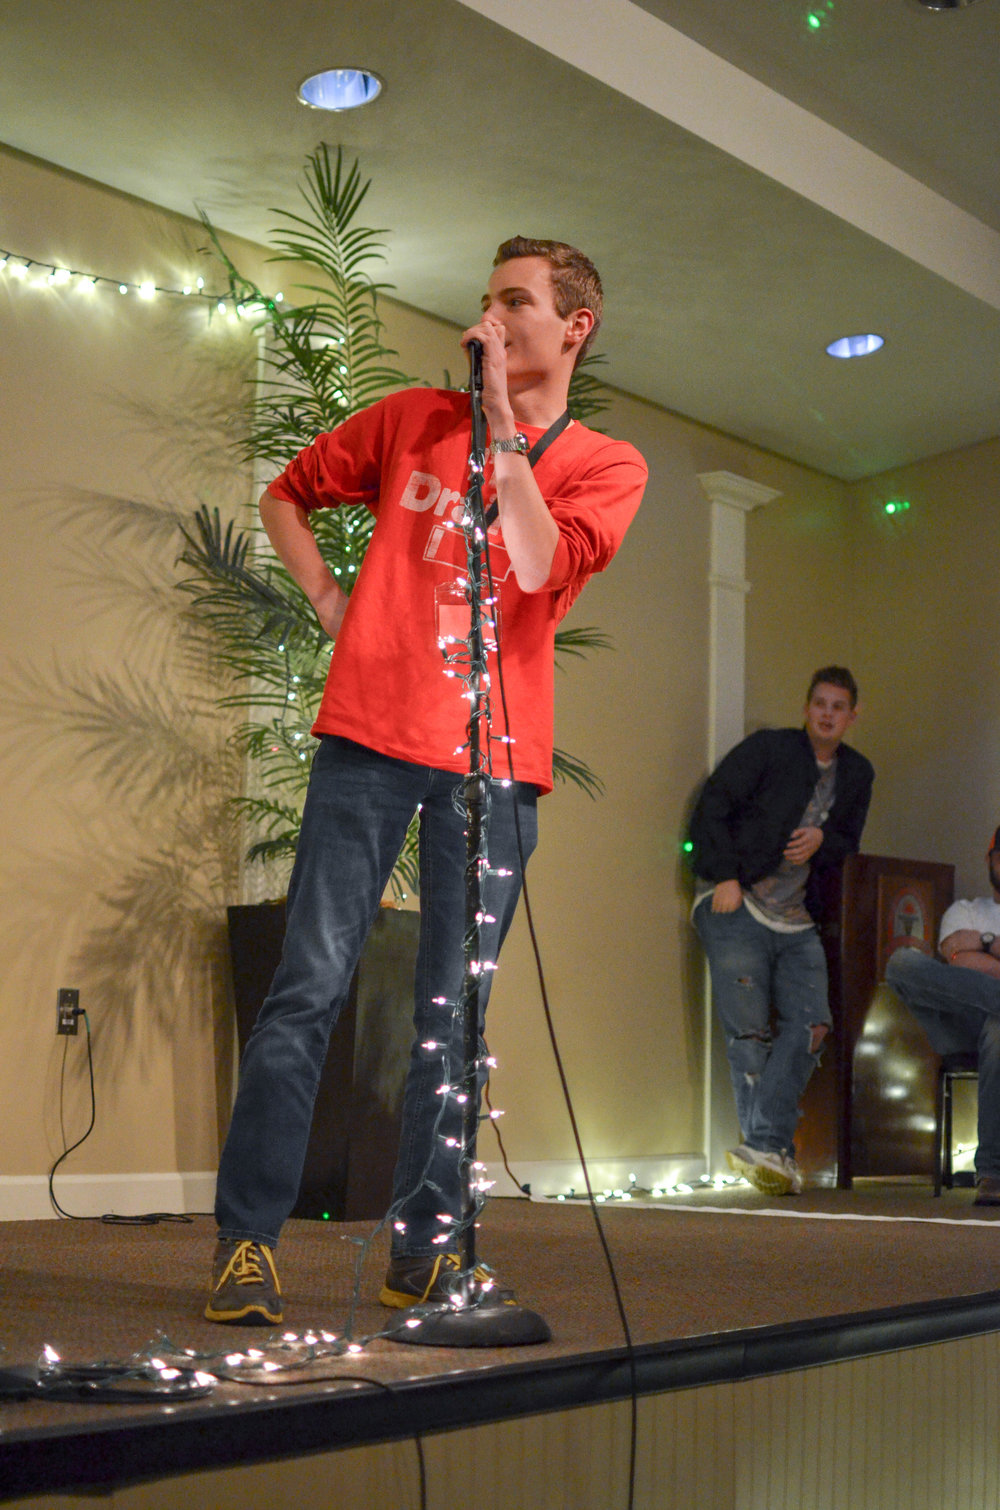 Landon Graber, an overnighter at NGU, performs standup comedy at coffeehouse.